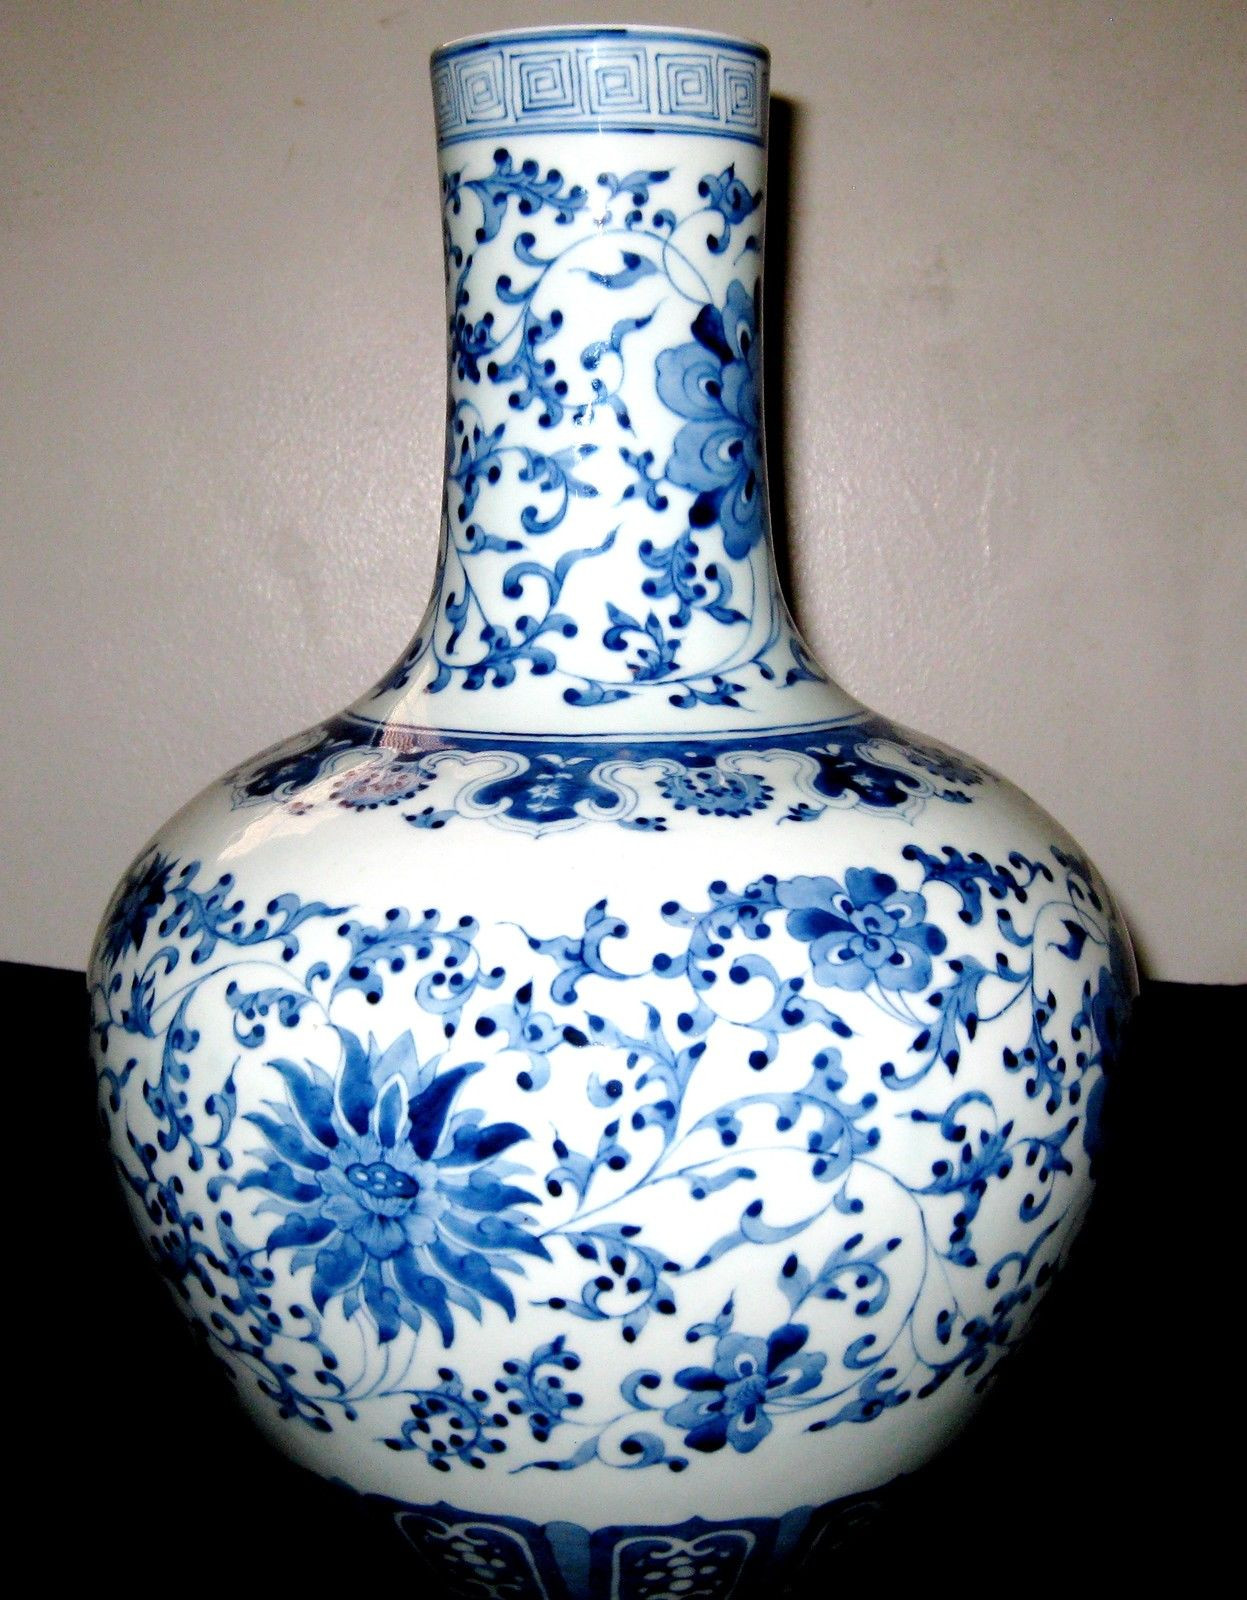 blue and white chinese vases antique of chinese vases blue and white vase and cellar image avorcor com in antique chinese blue white lotus meiping porcelain vase